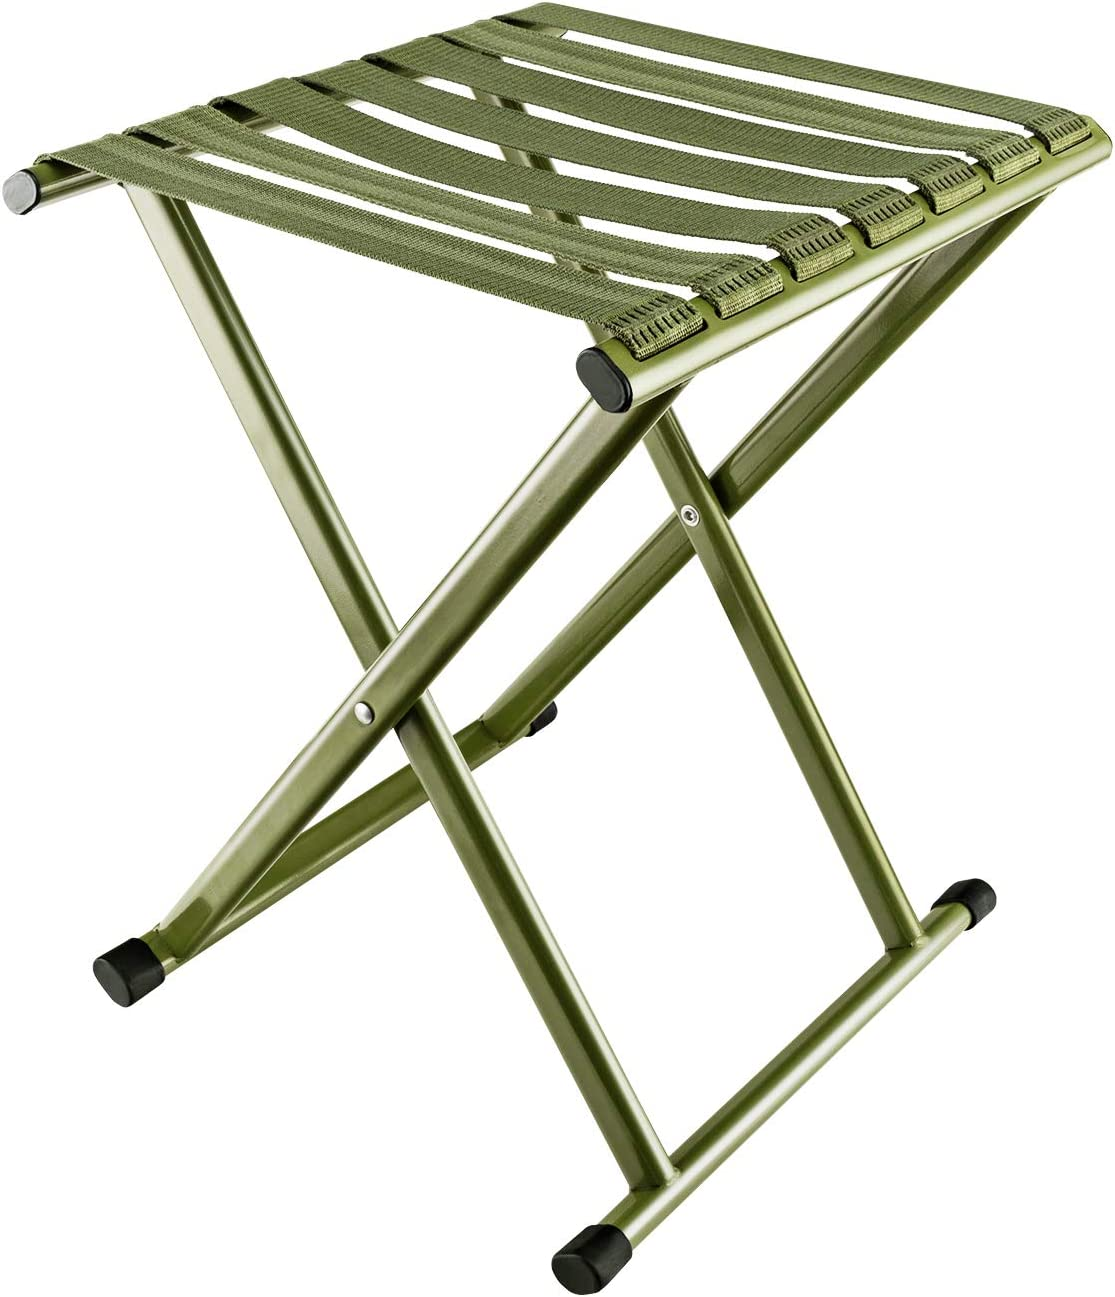 E-jades Folding Camp Stool 17.9in Height Comfortable foldable,Hold up to 650lbs,Heavy Duty Camping Chair,Outdoor Big Tall Portable adults for Fishing,Hunting,Sitting,Large Seat for Heavy Weight People